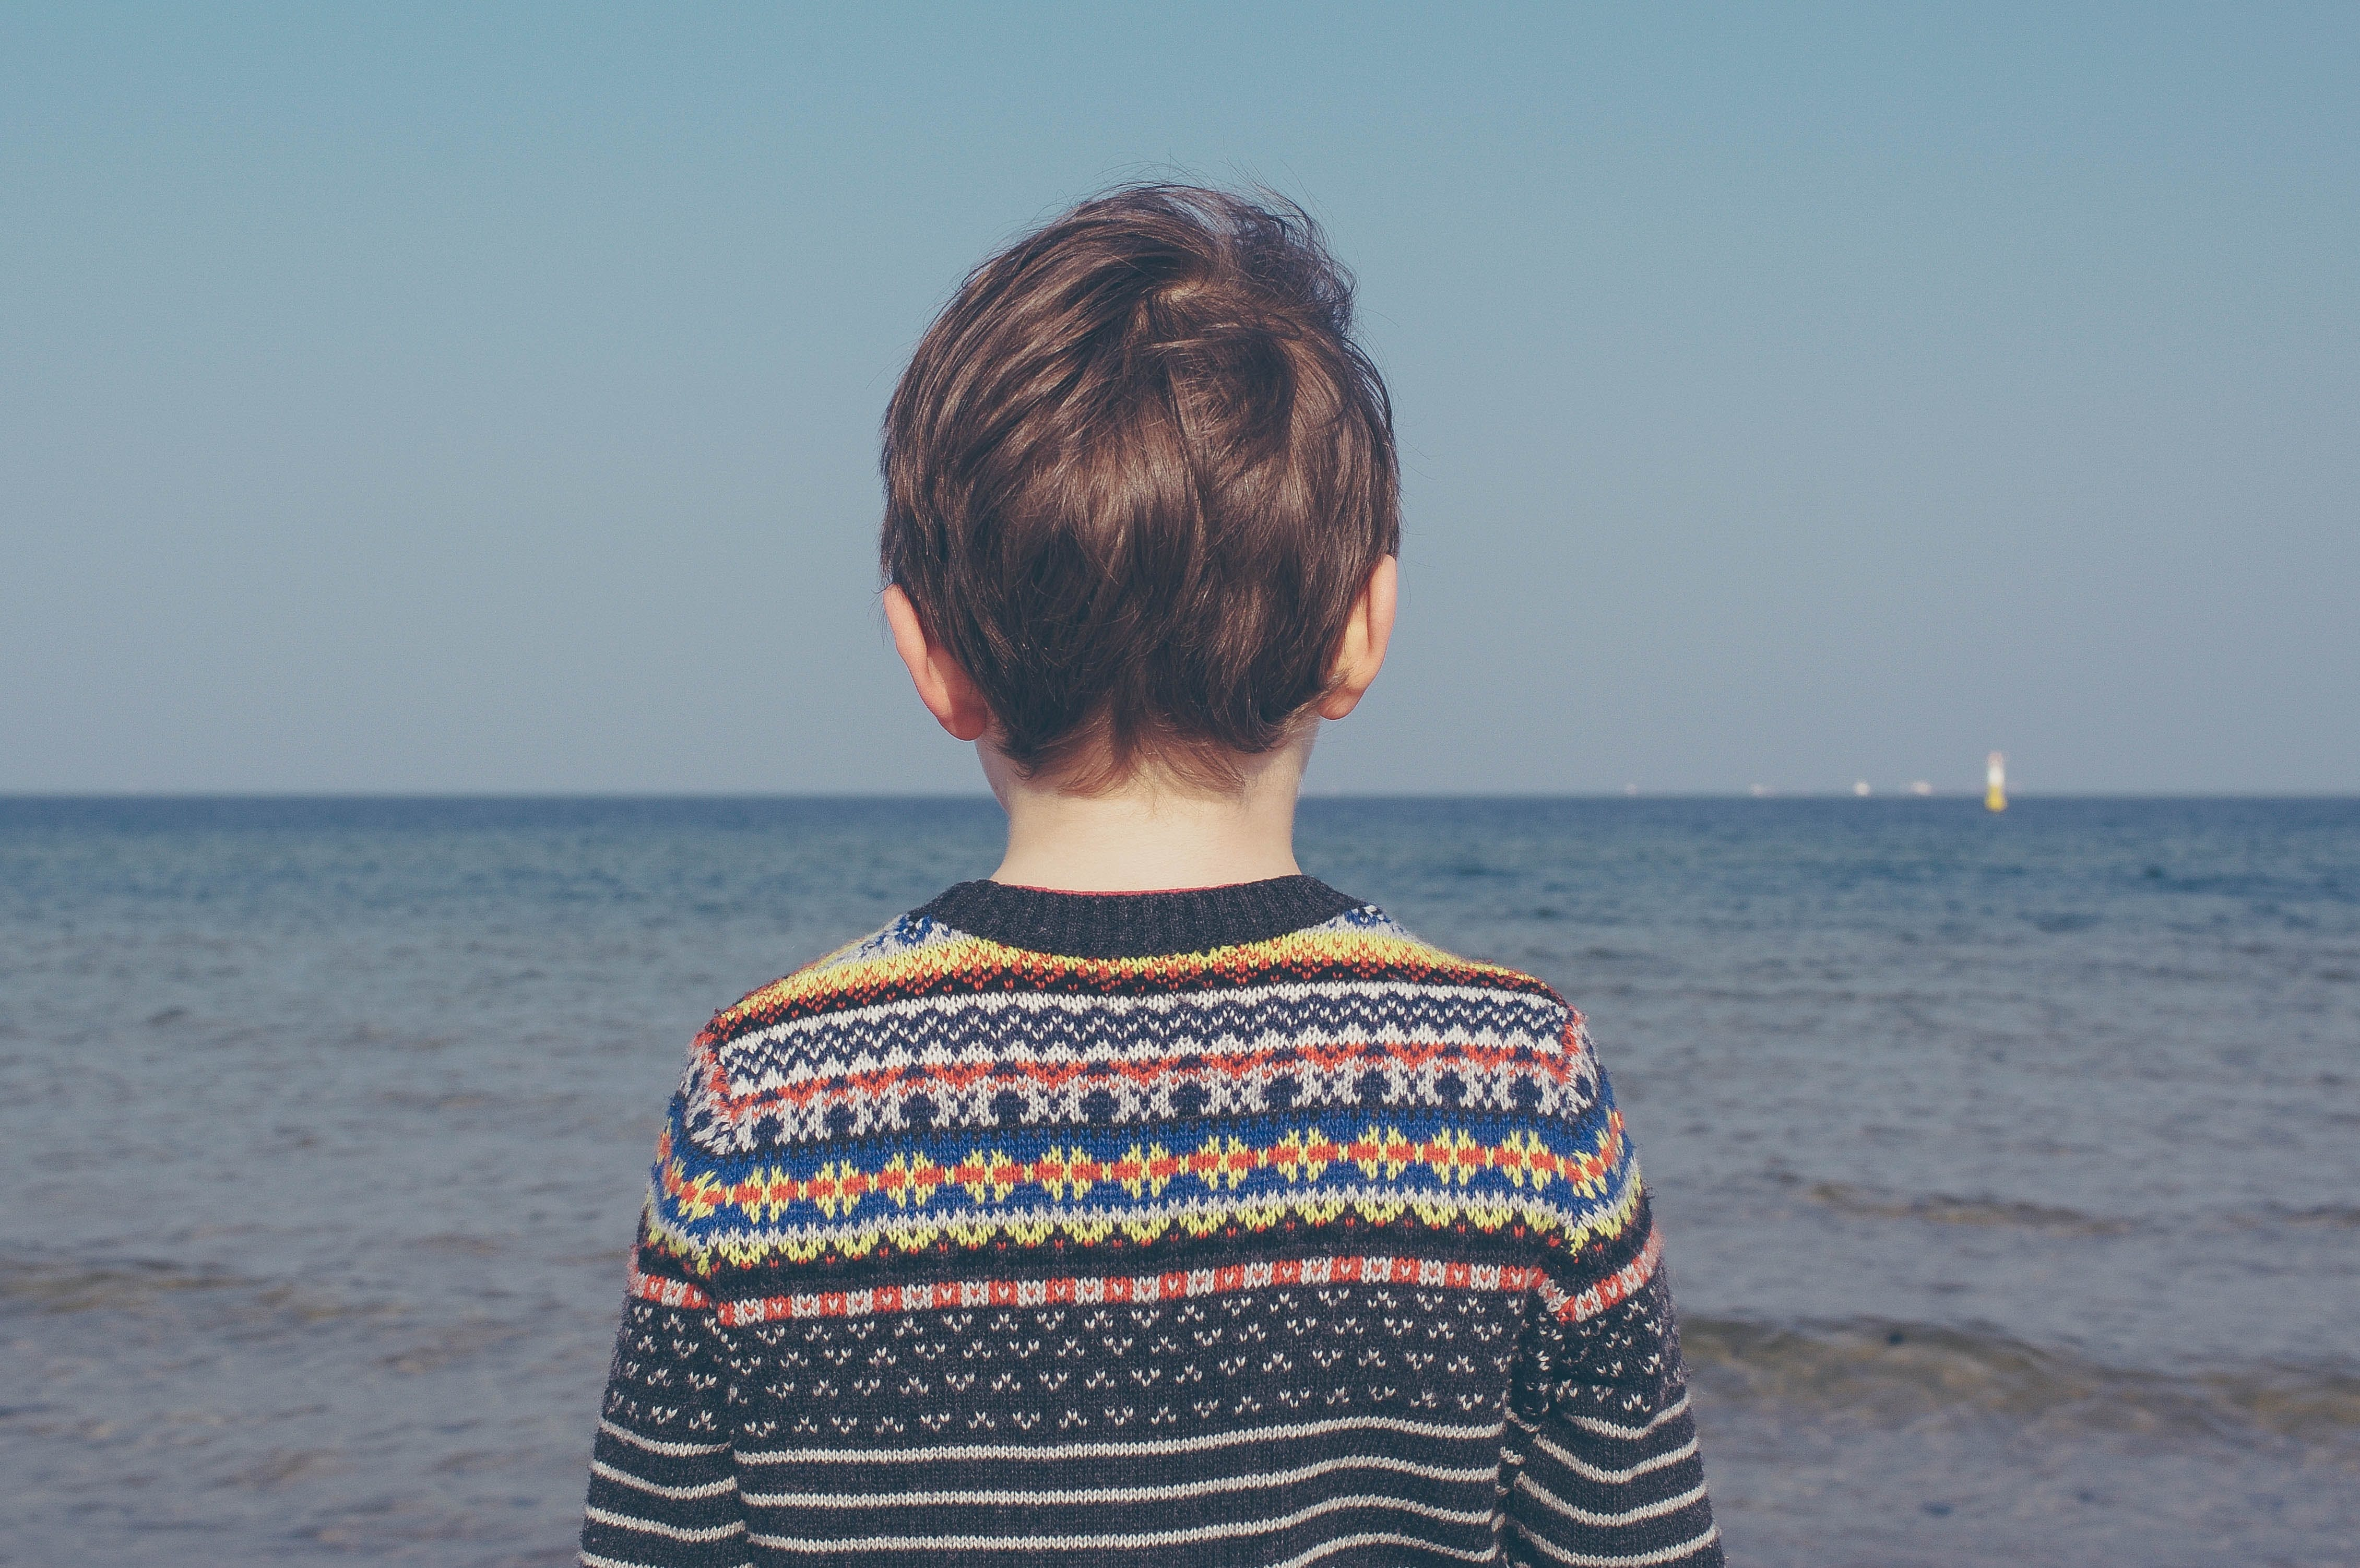 child staring at the ocean